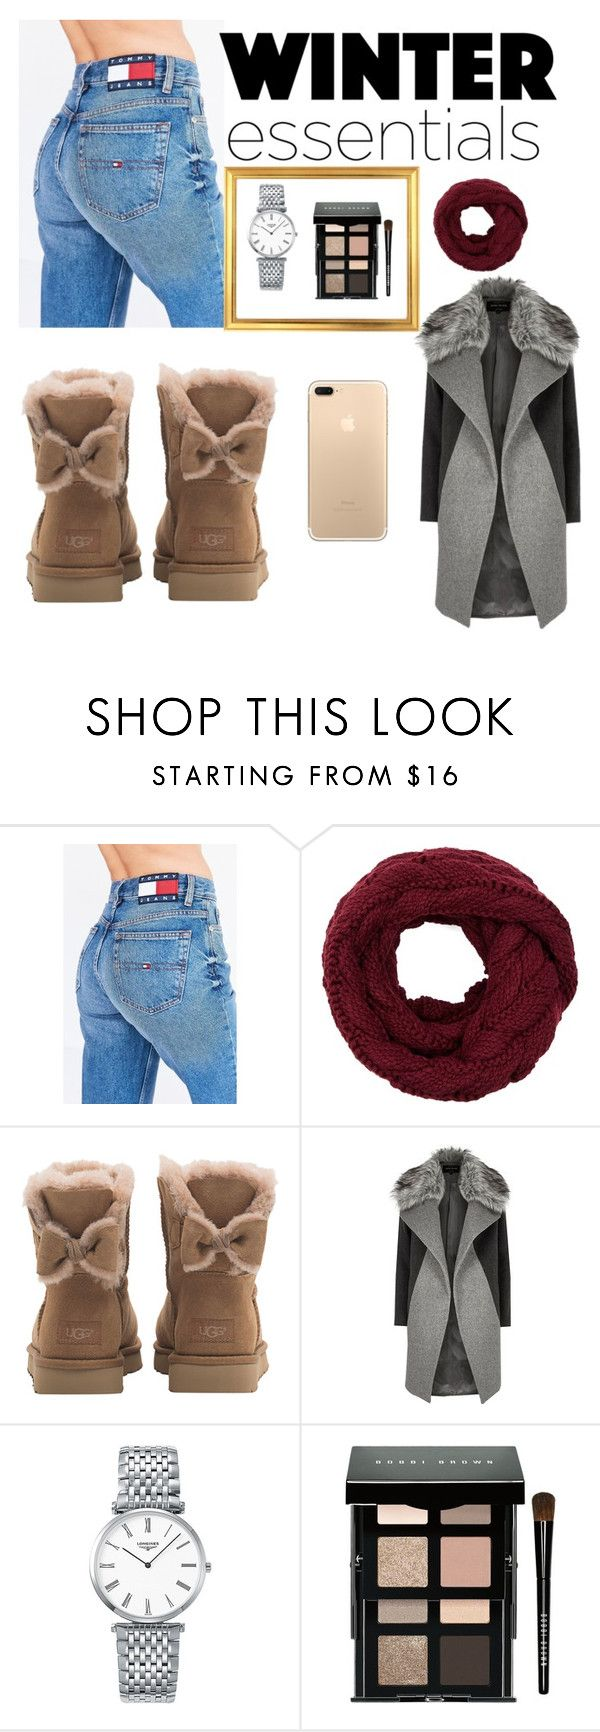 """Untitled #2"" by kaitlynroe ❤ liked on Polyvore featuring Tommy Hilfiger, UGG, River Island, Longines and Bobbi Brown Cosmetics"